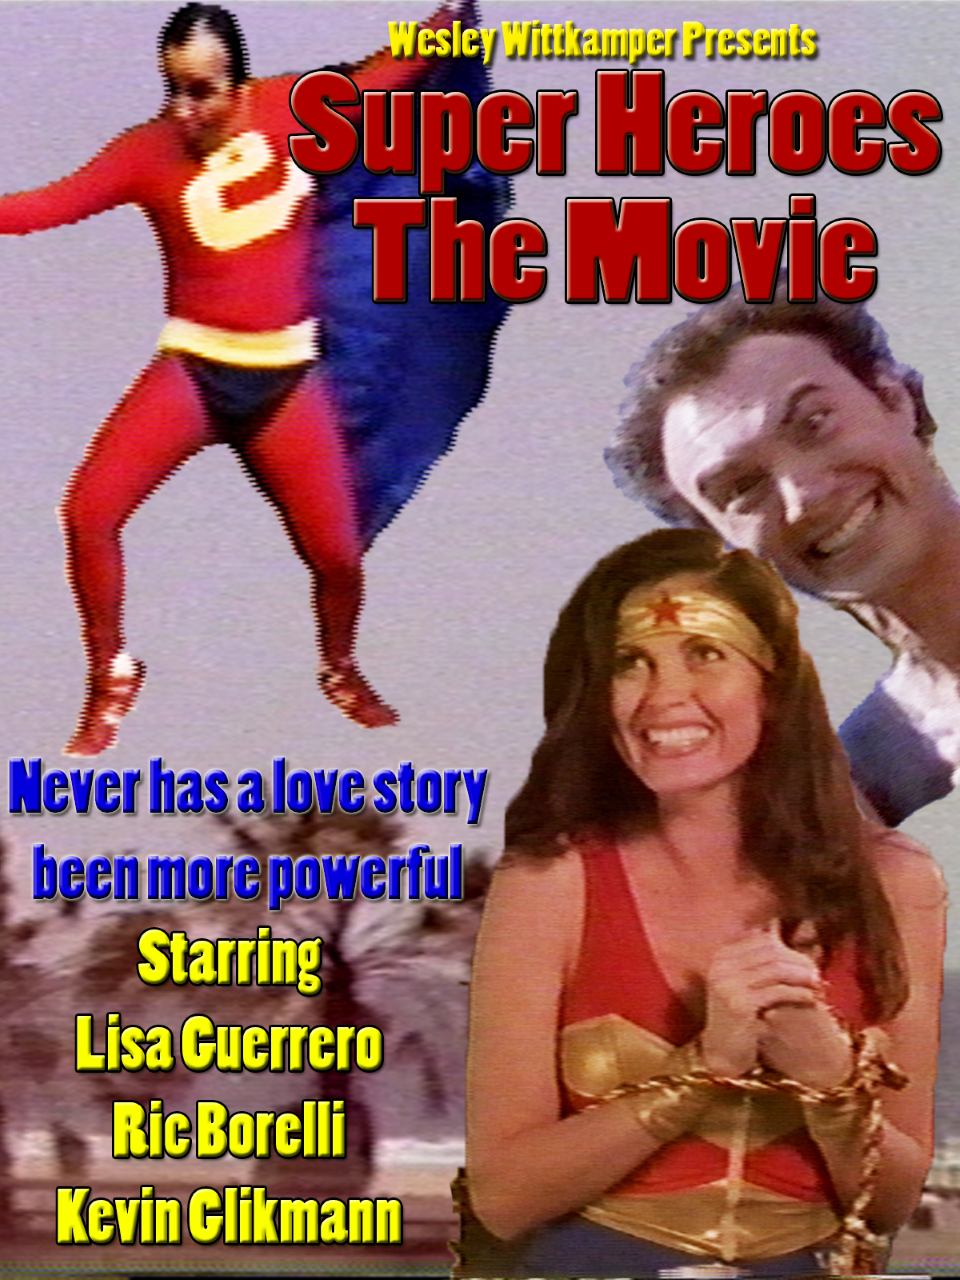 Poster for Super Heroes The Movie showing protagonists.